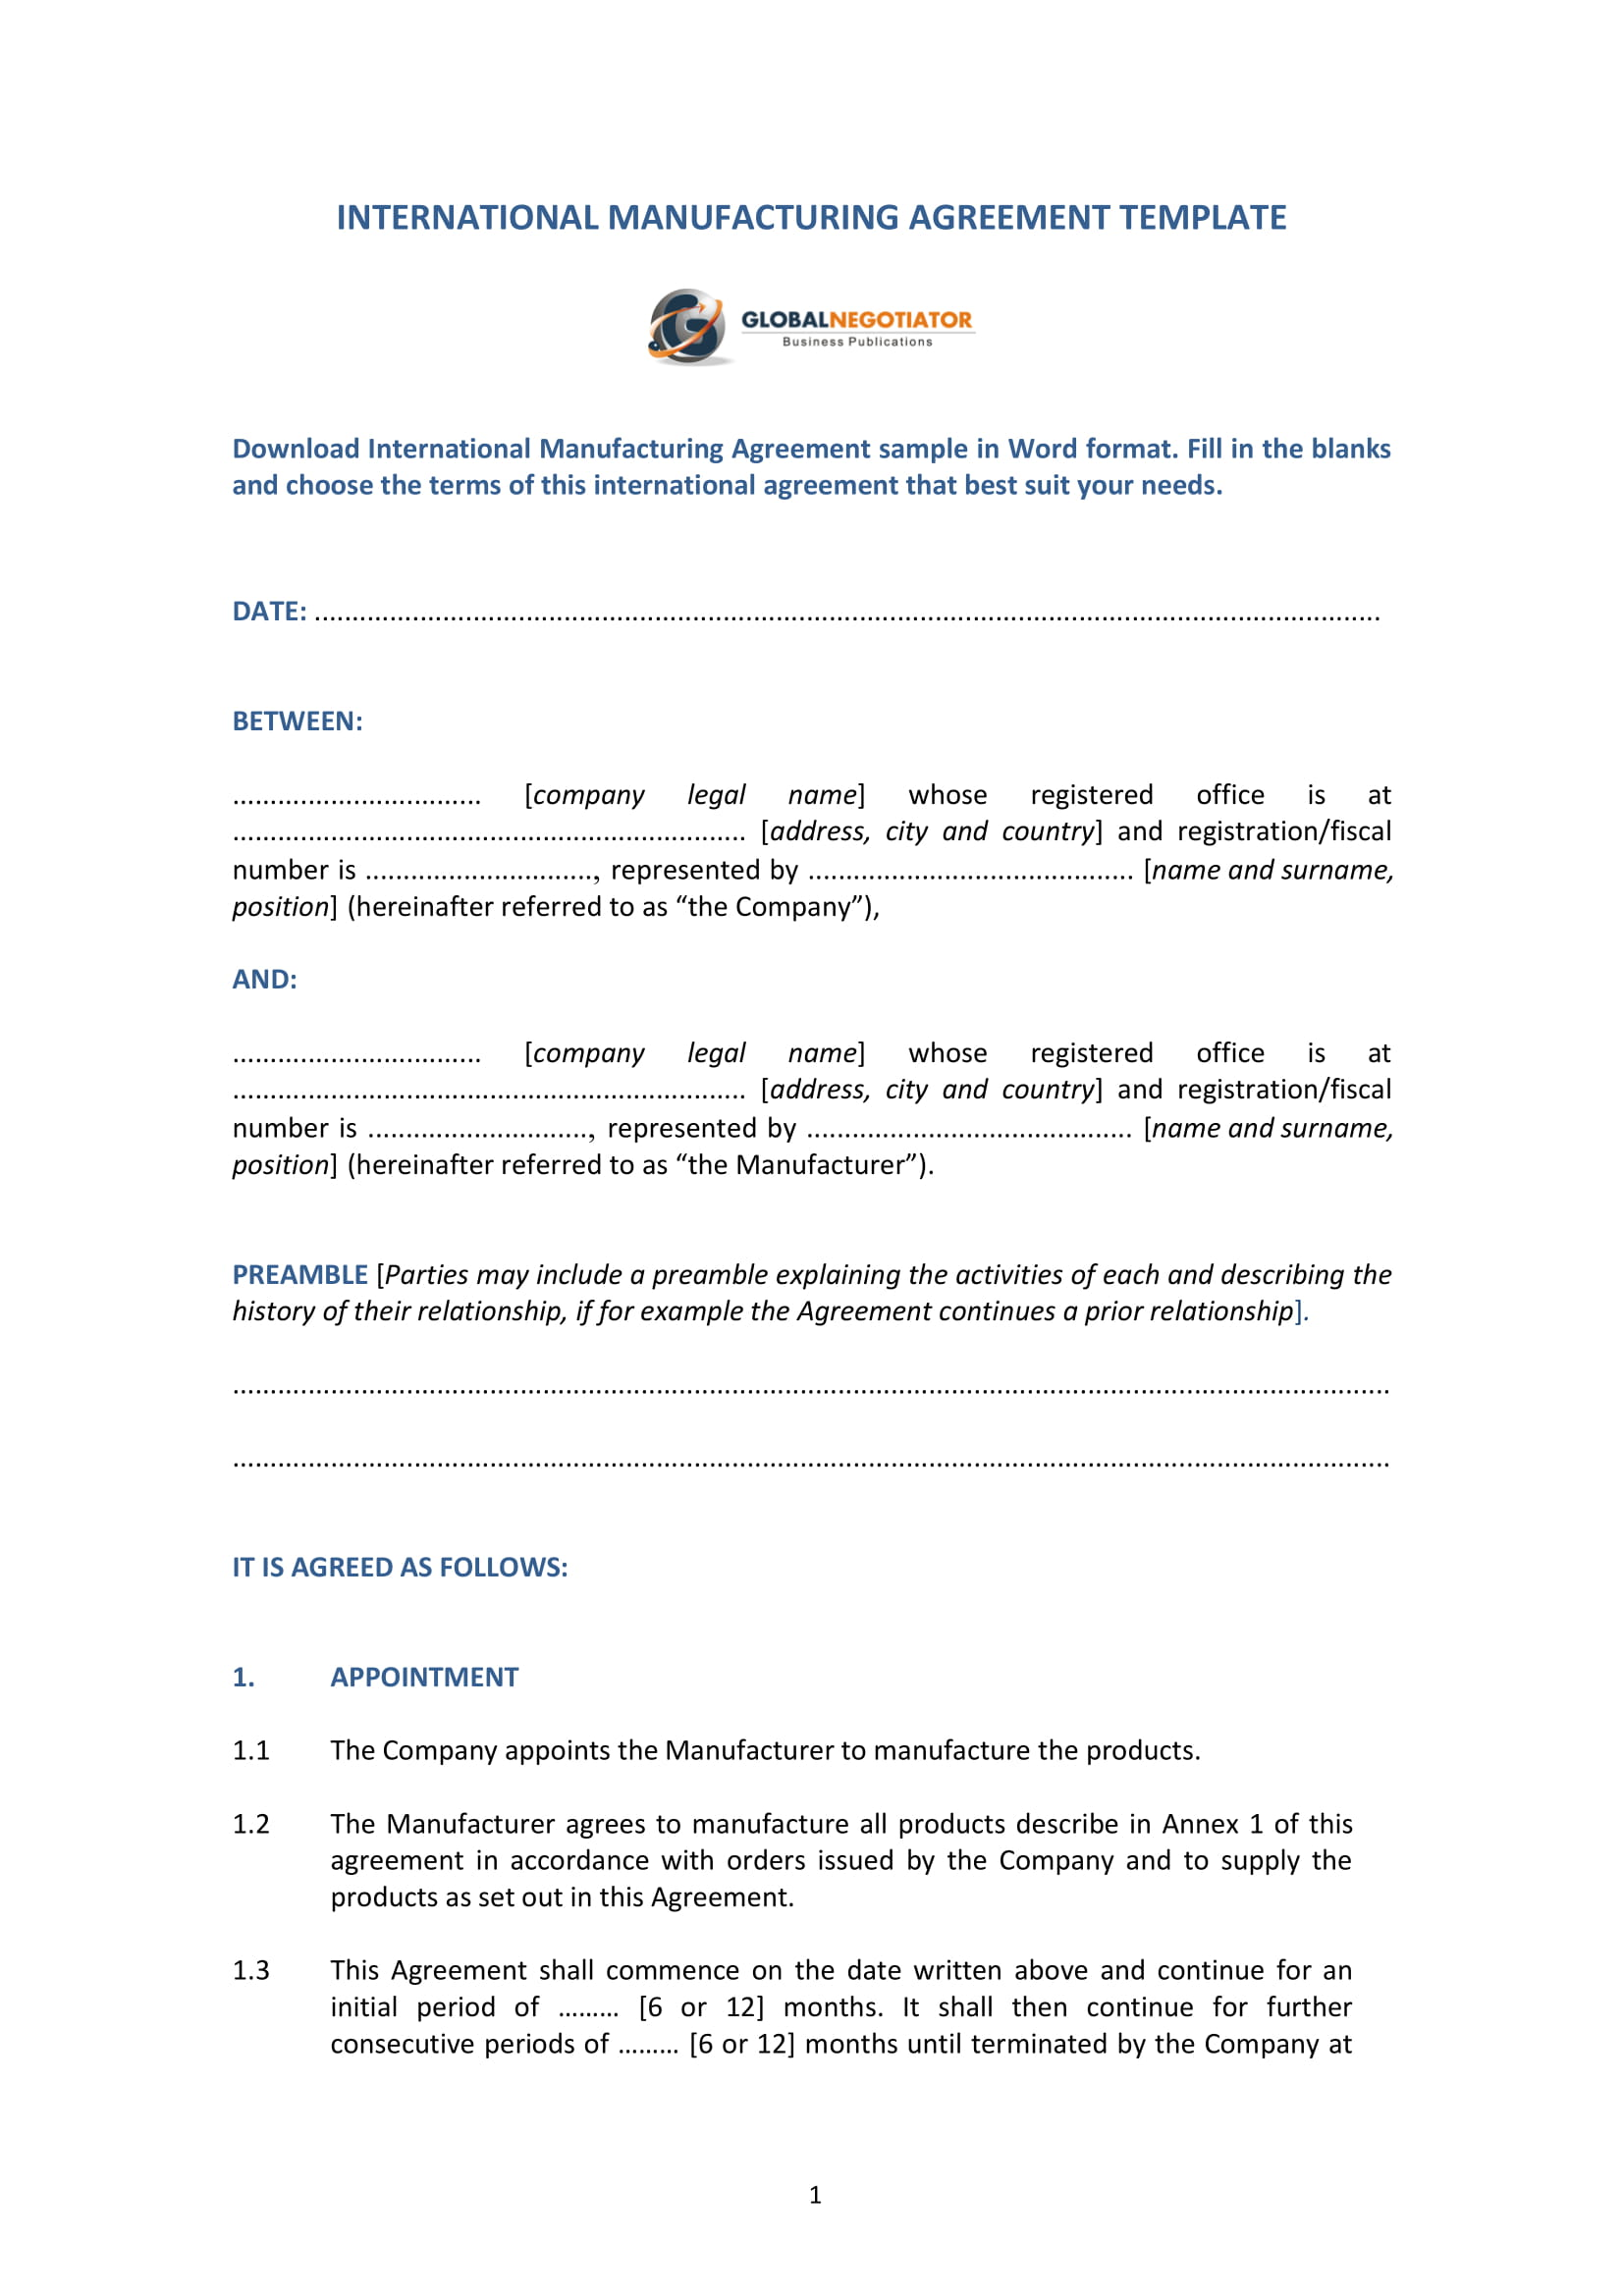 contract agreement for international manufacturing template example 1